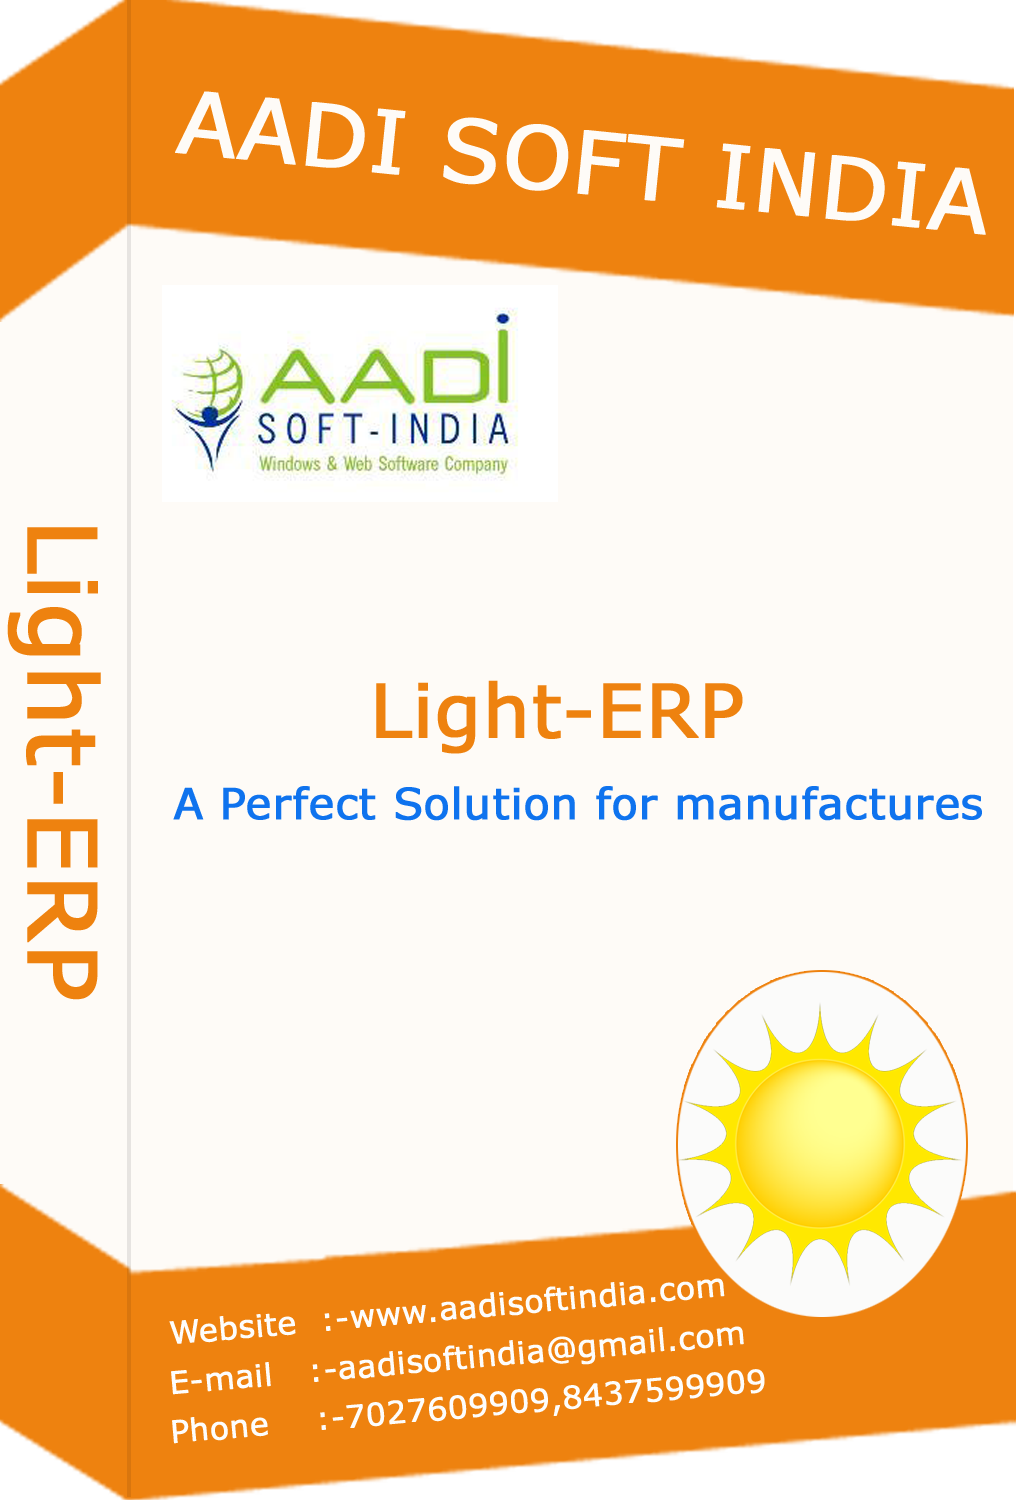 AADI SOFT INDIA ERP Software